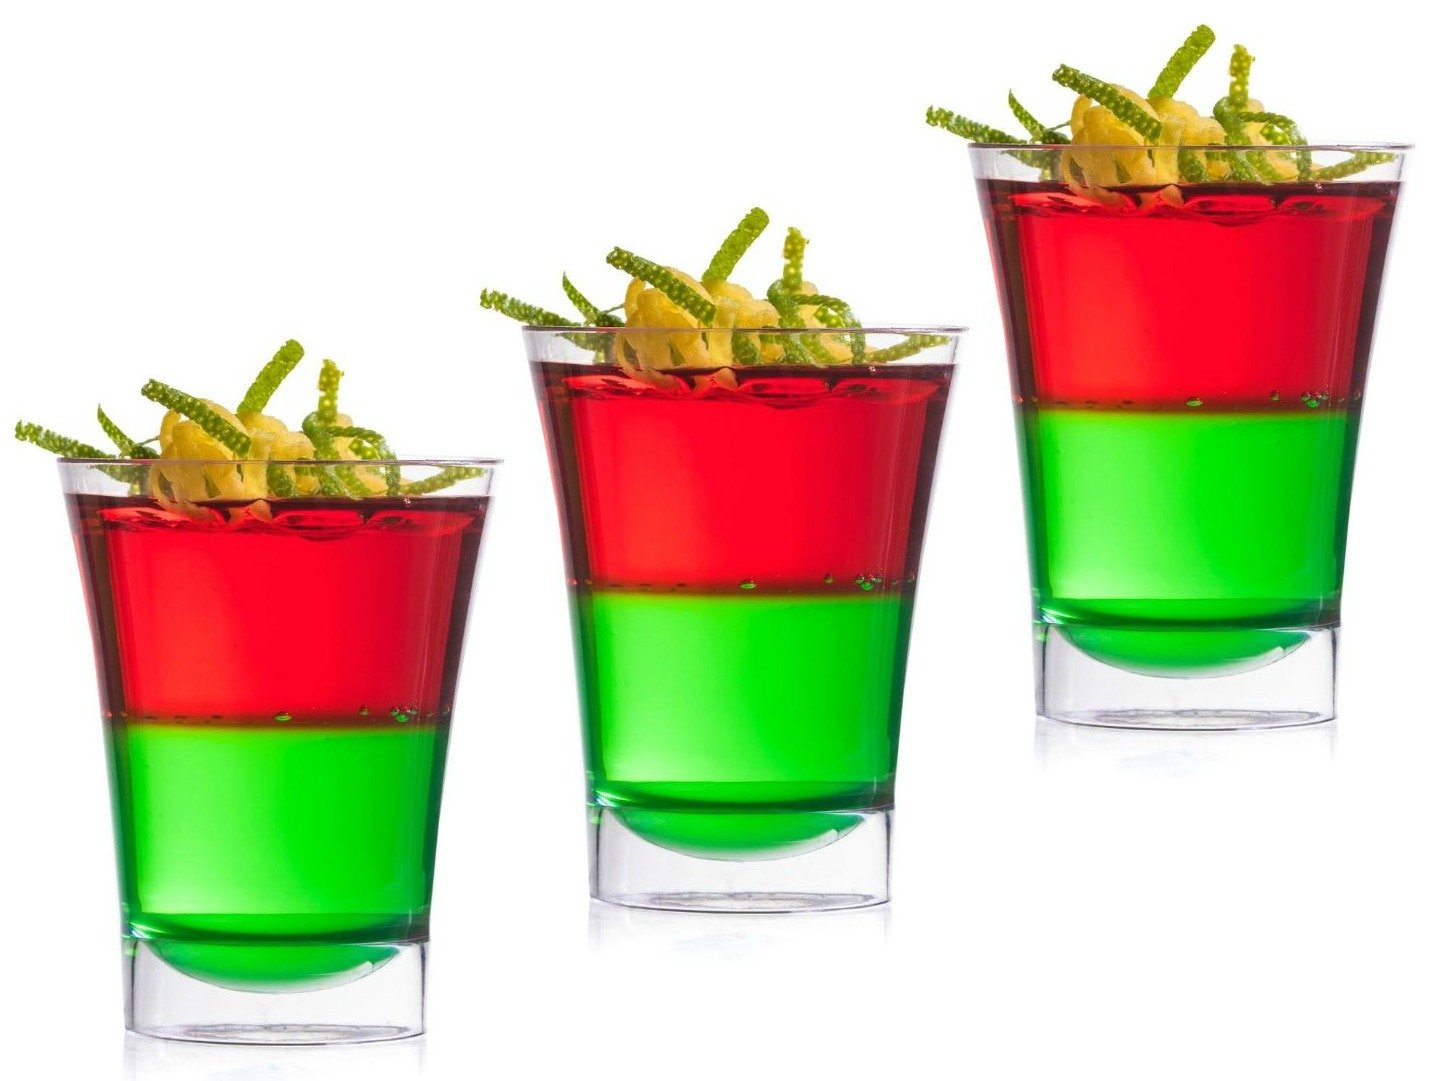 Zappy Disposable Plastic Shot Glasses 2 Oz Clear Tumblers - Tasting Sample Dessert Shooters Wine Beer Champagne Jello Cup Shot Glass Cups (200) by zappy